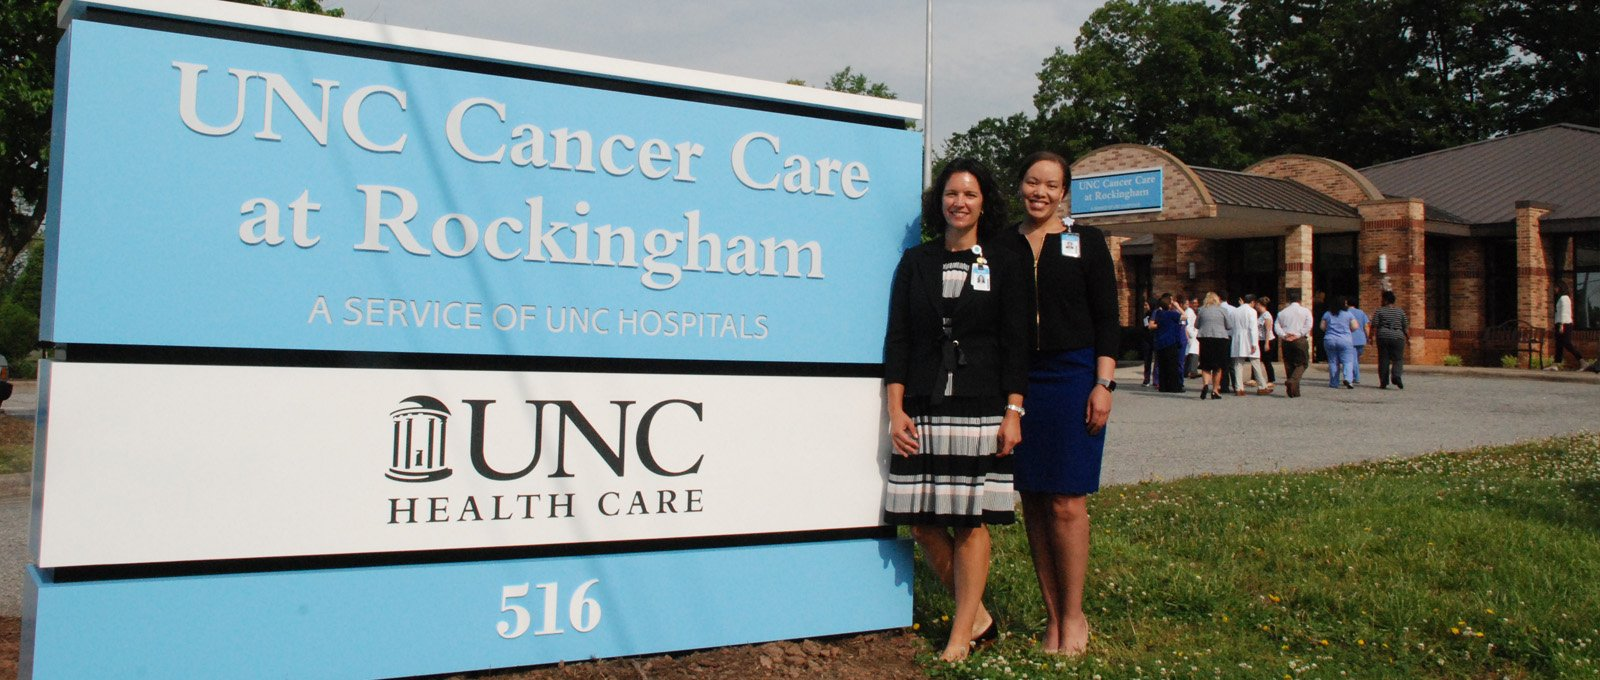 UNC Cancer Care at Rockingham building